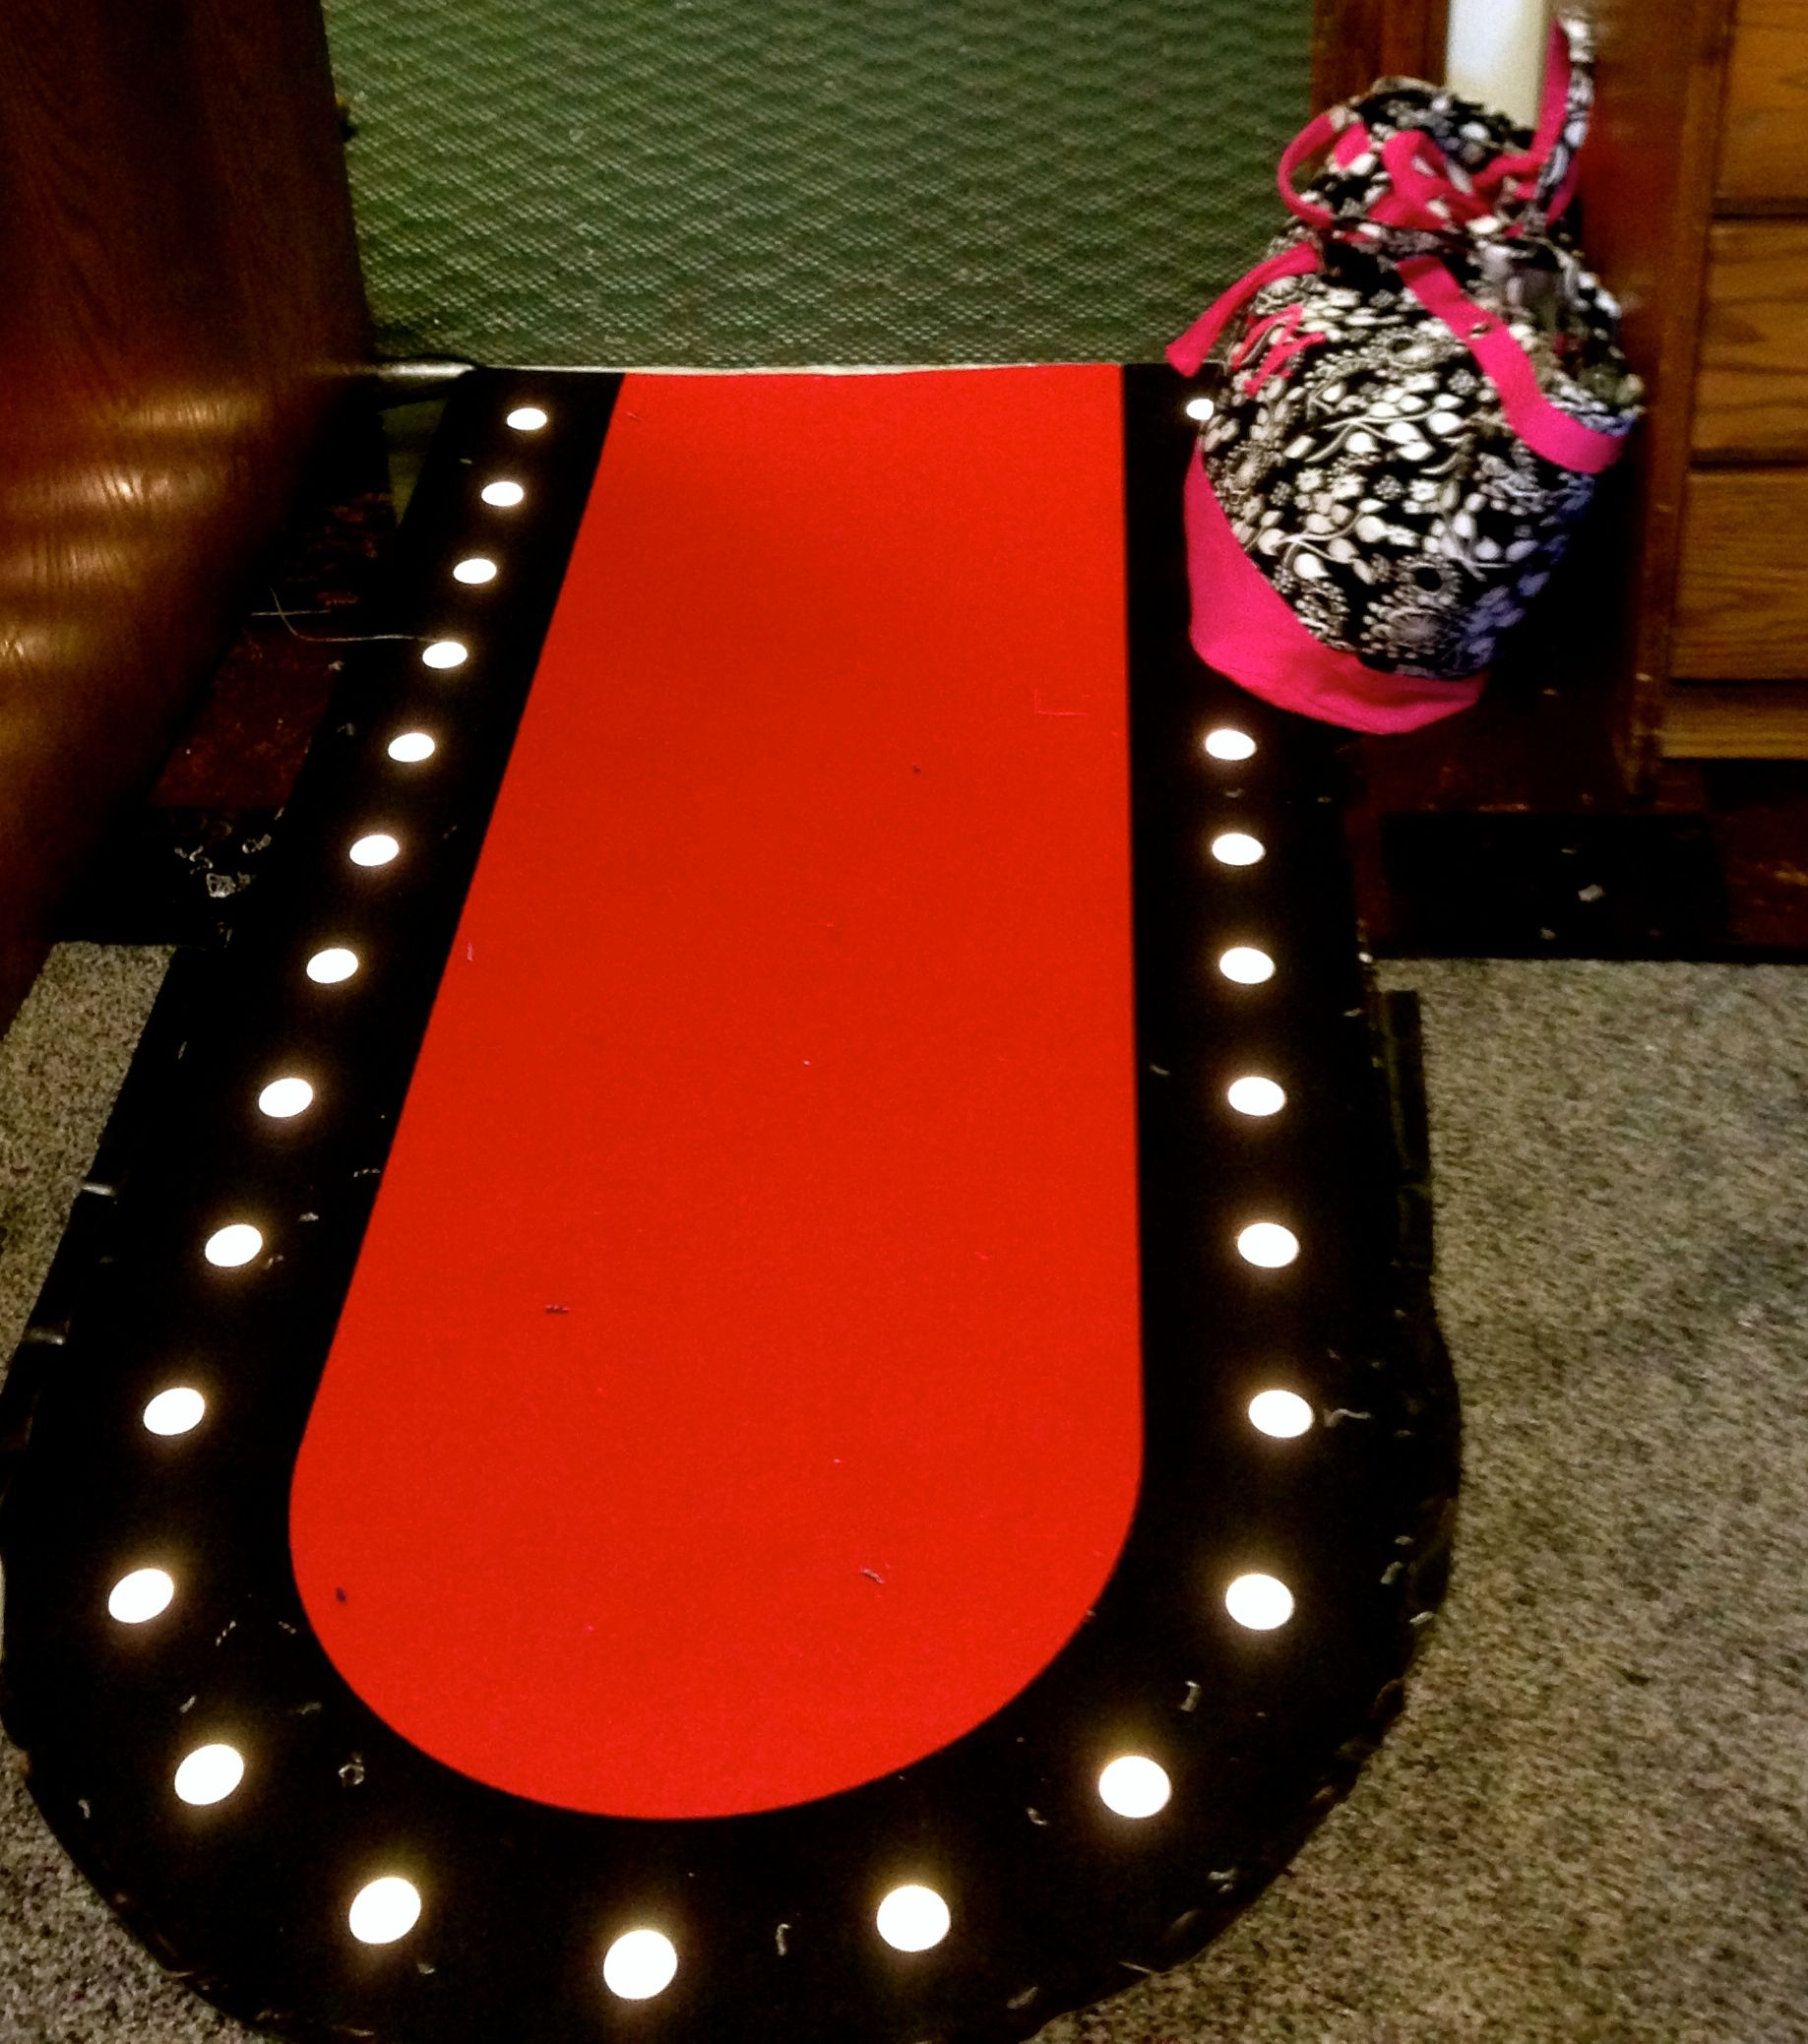 This Led Light Up Red Carpet Runway Love This Rug From Ikea It Flashes And Strobes Too